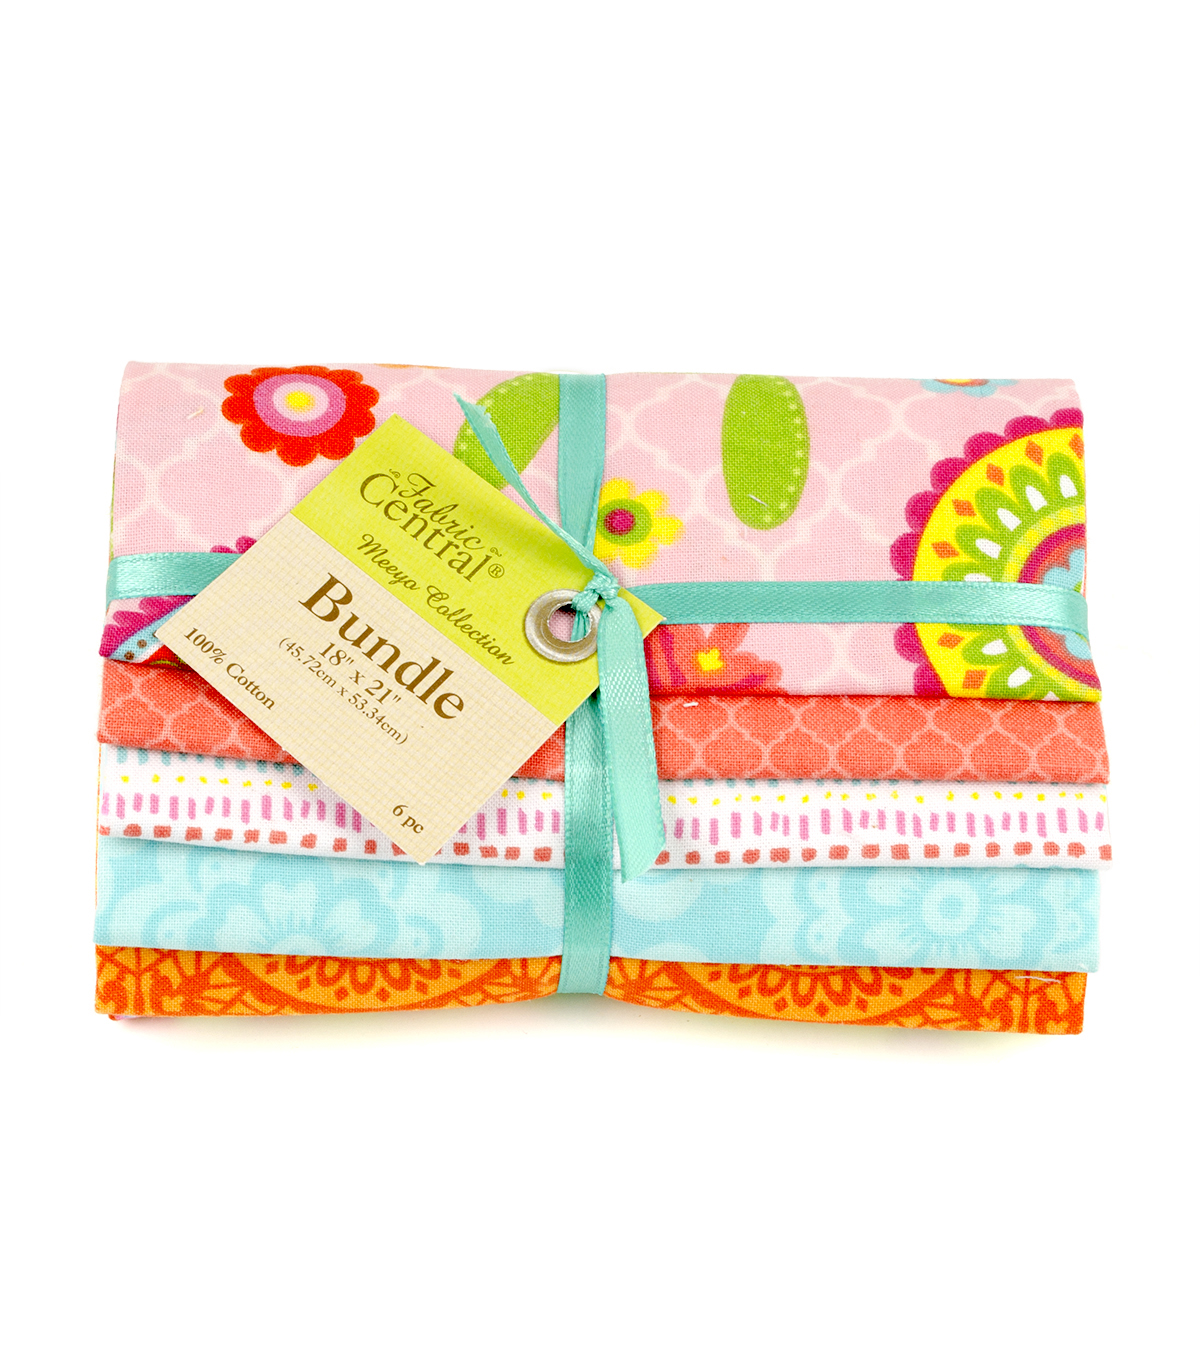 Fabric-Central Cotton Fabric-Meeyo Bundle 2